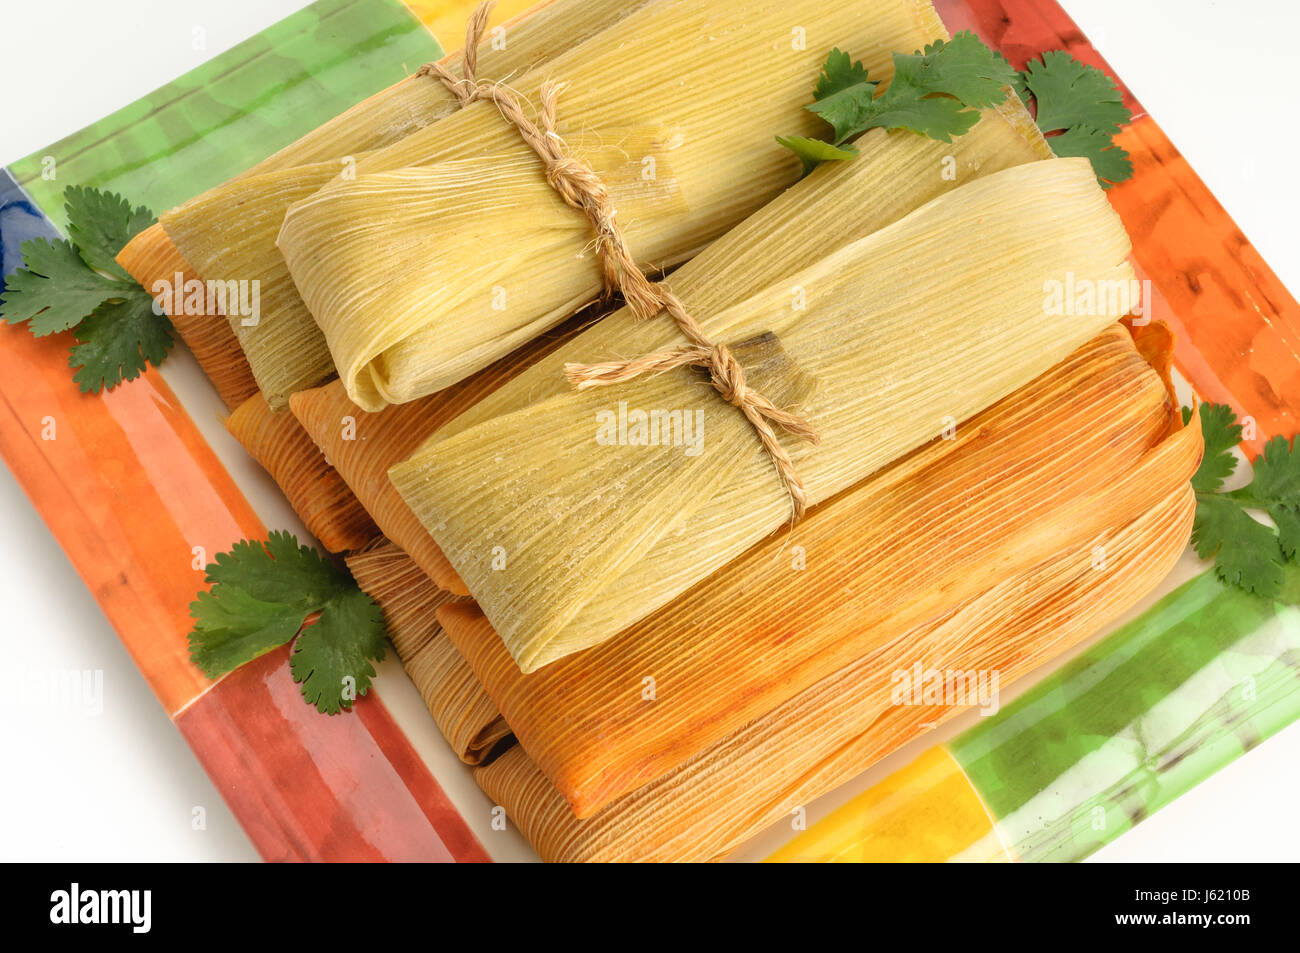 Tamales Mexican Dish Made With Corn Dough Chicken And Chili Stock